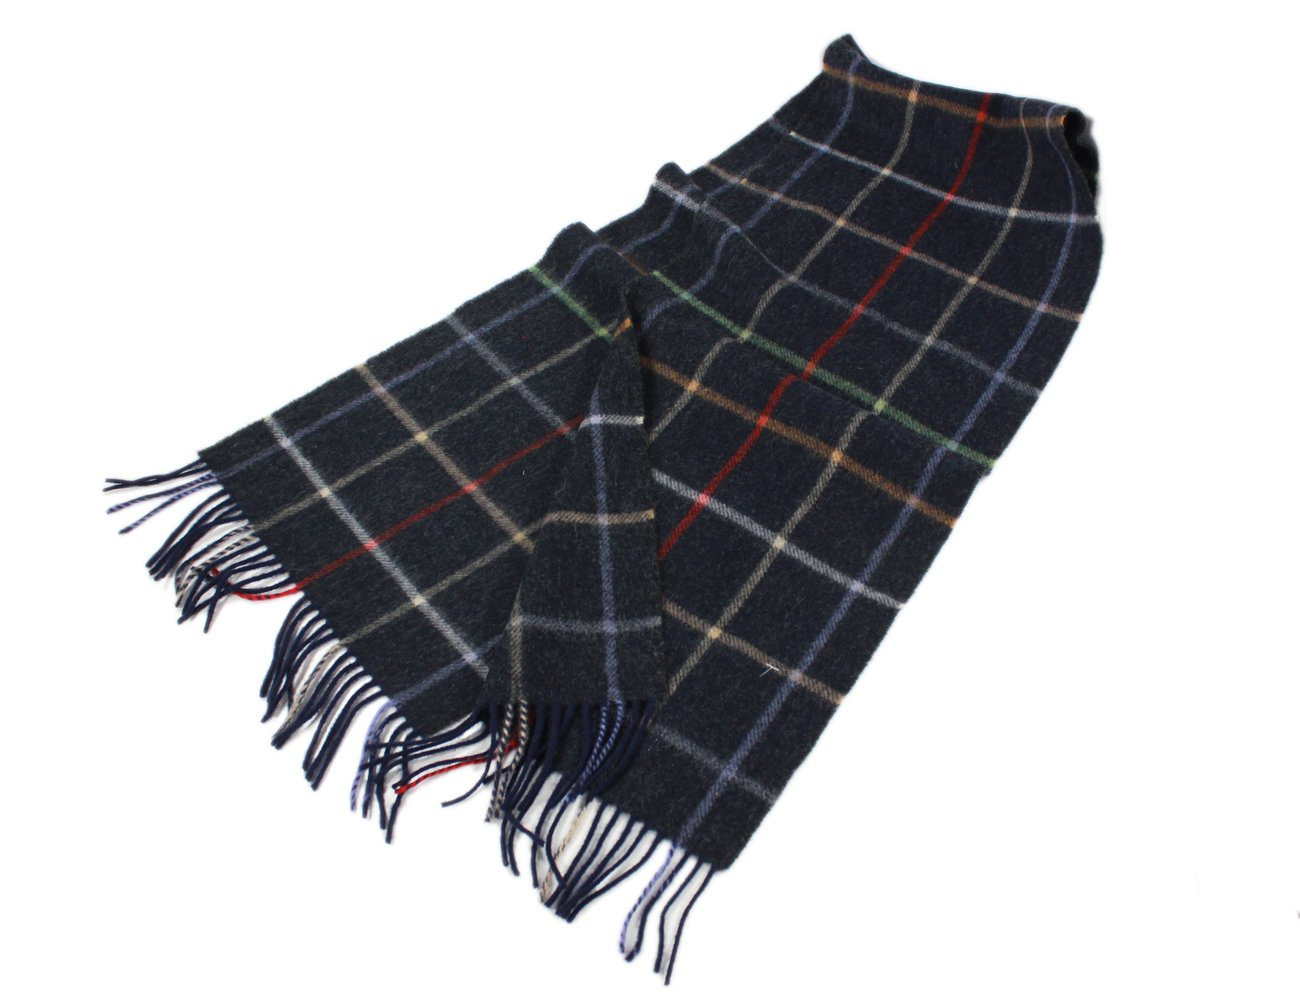 "Irish Wool Scarf Lambswool Navy Plaid 63"" x 12"" Made in Ireland"